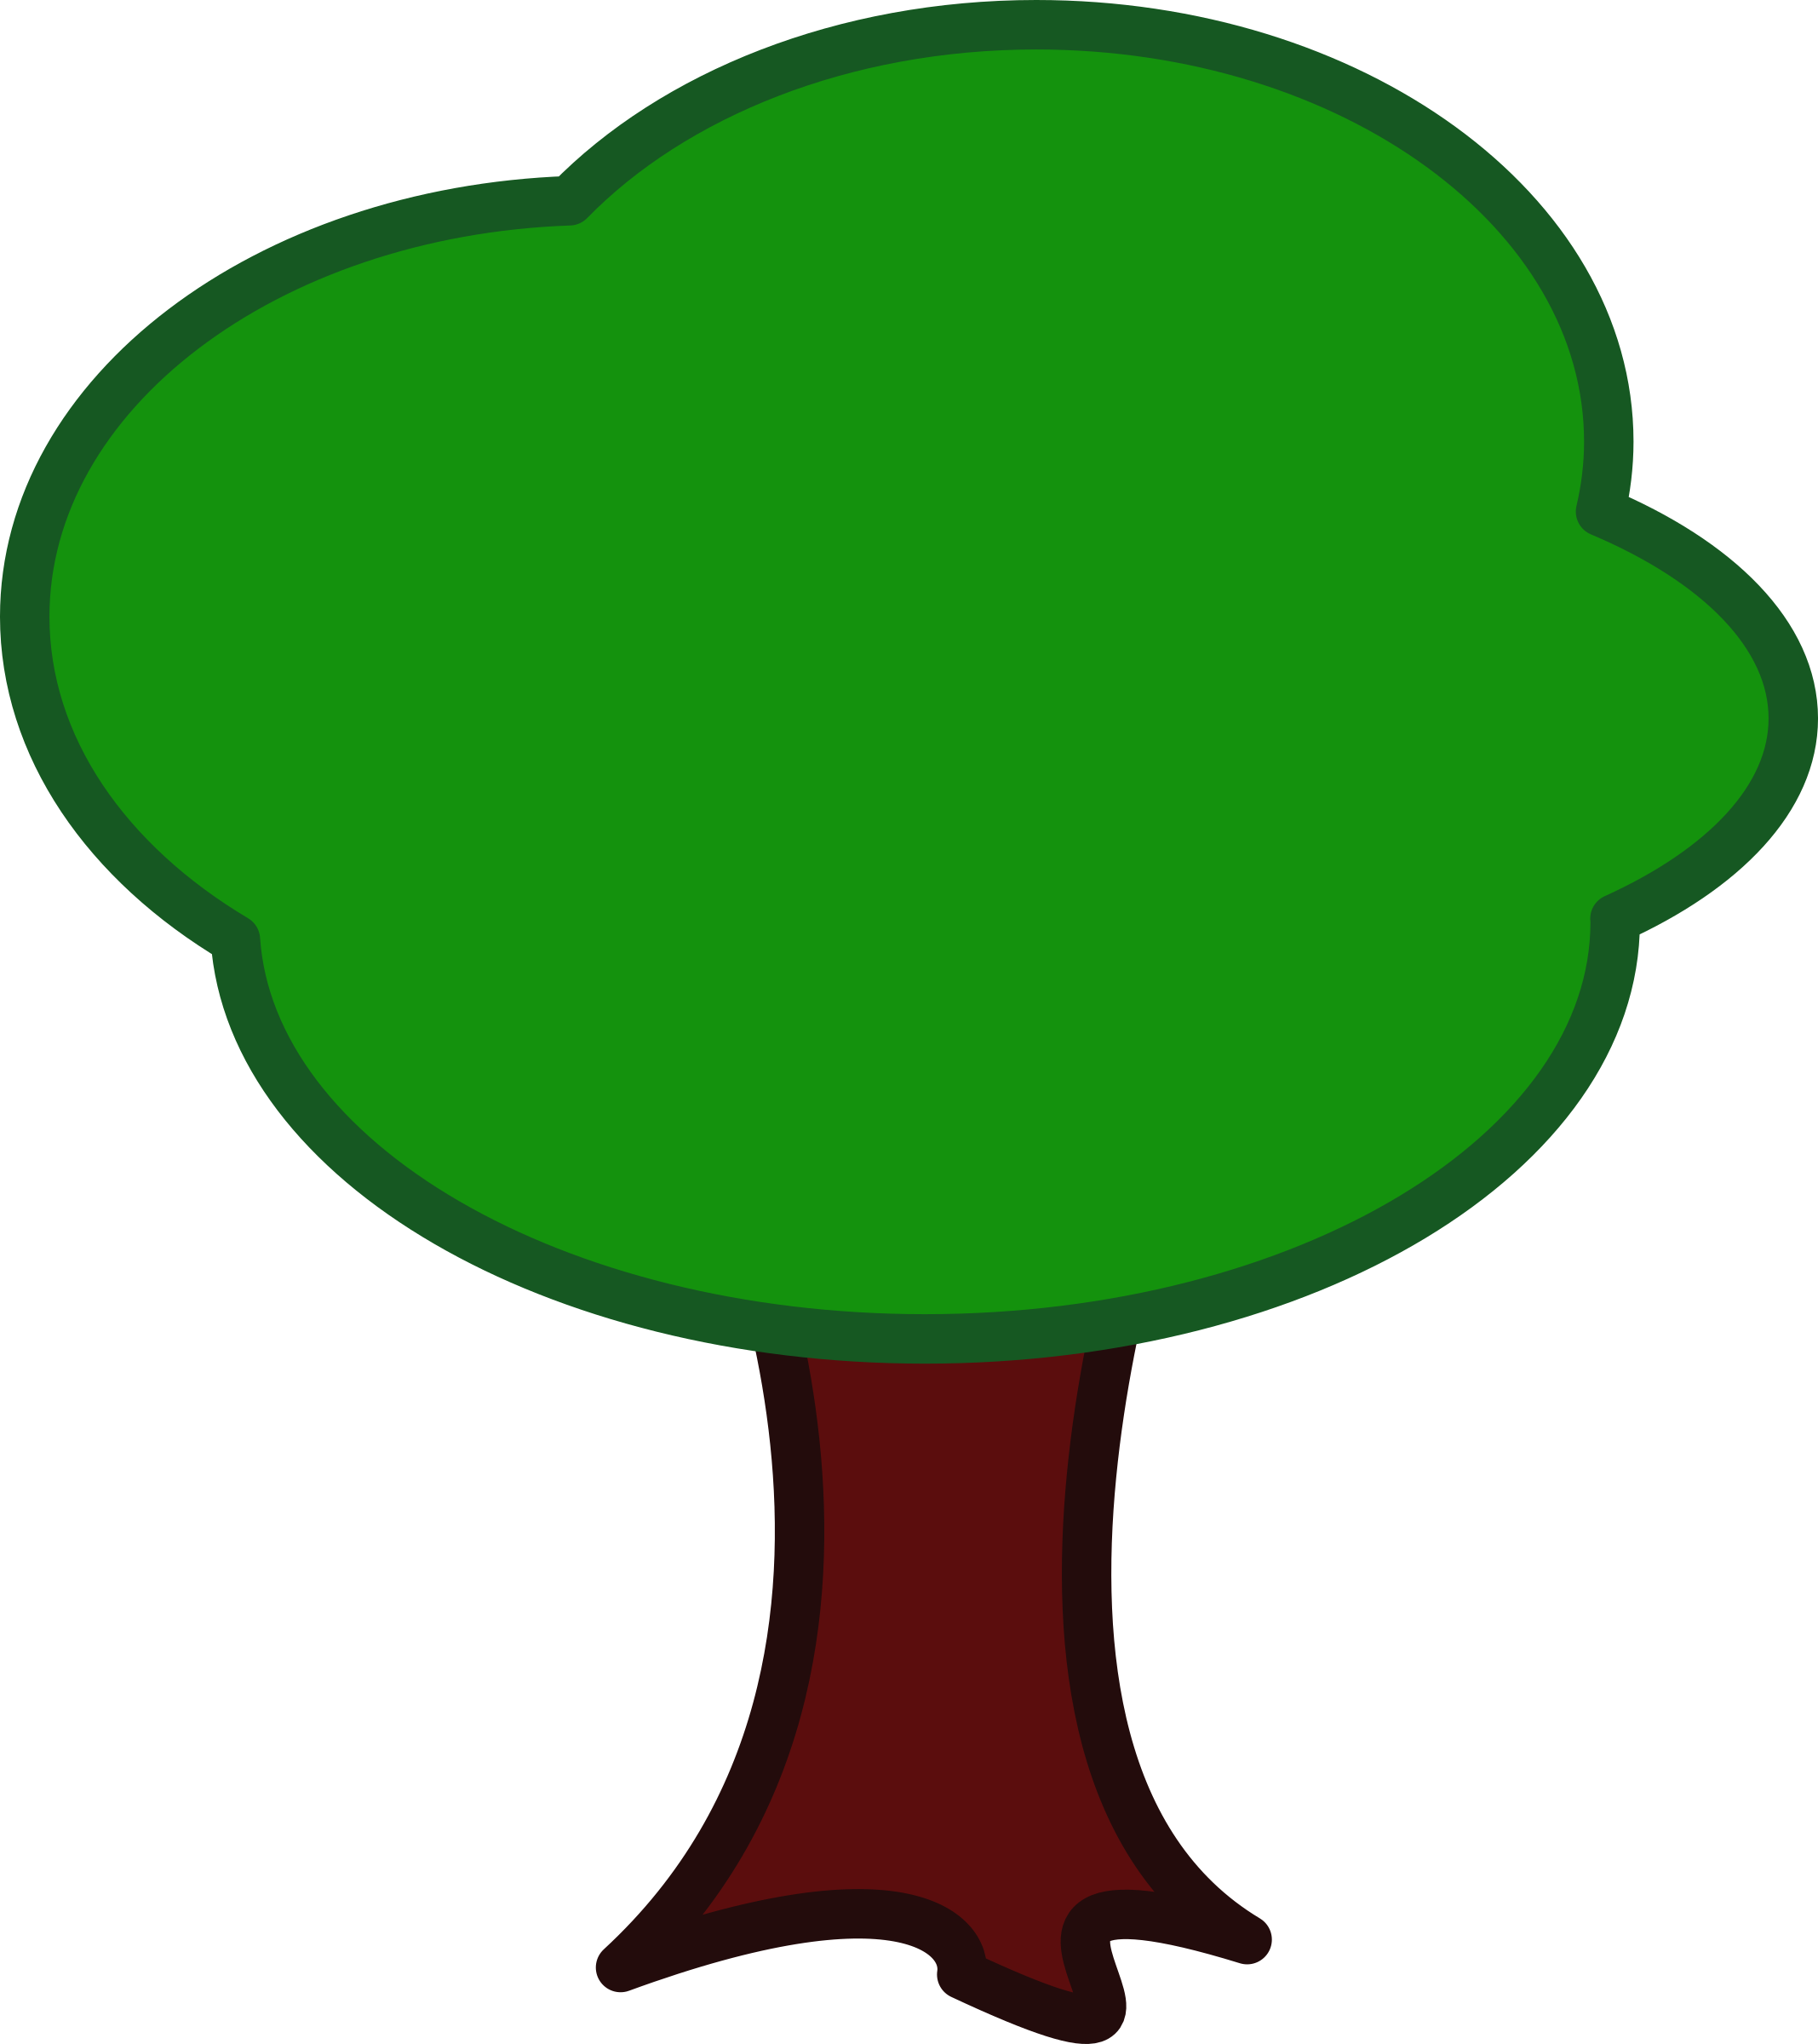 Tree clipart animation. Big image png